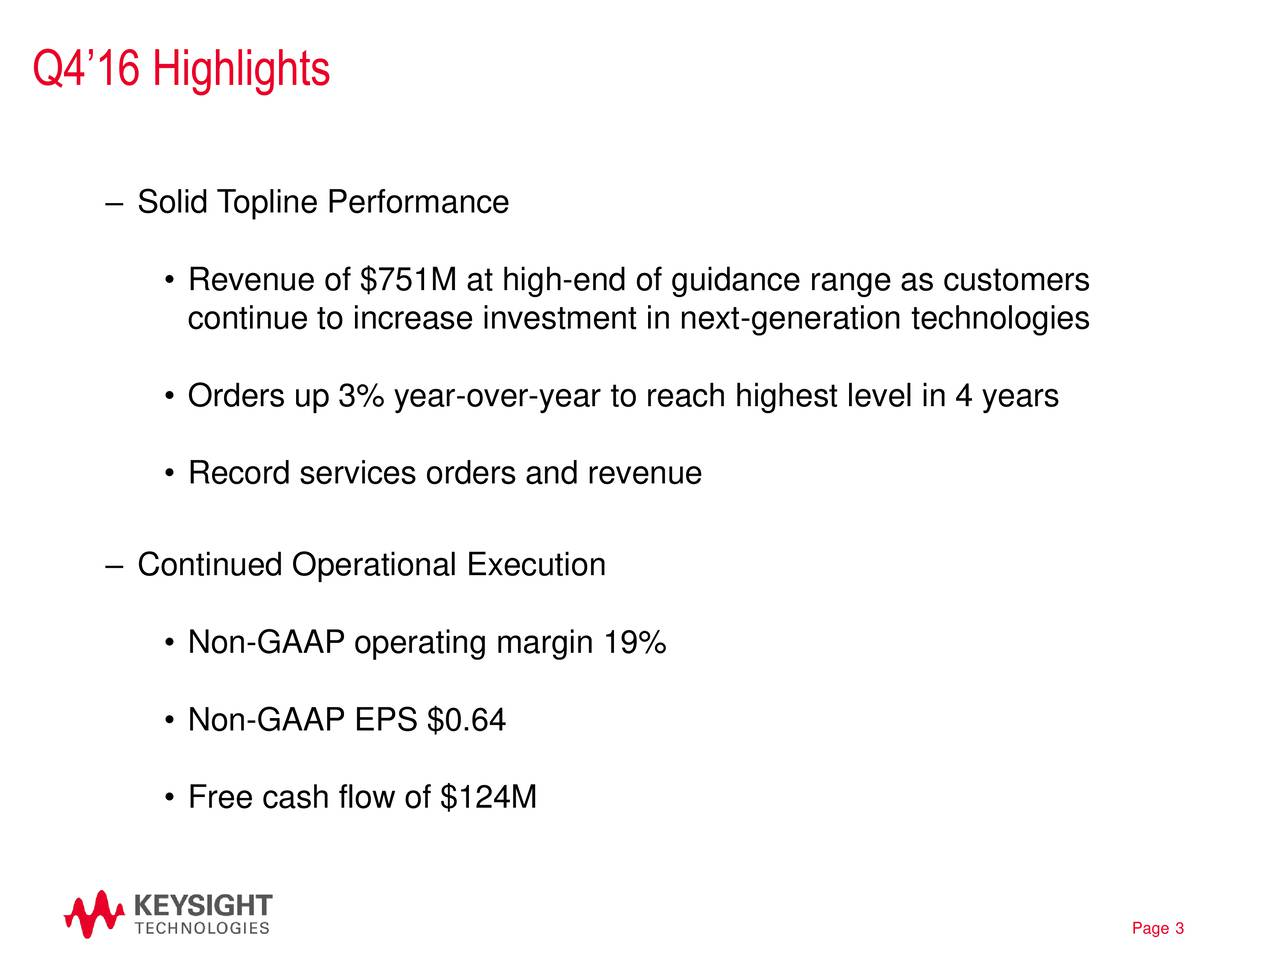 Solid Topline Performance Revenue of $751M at high-end of guidance range as customers continue to increase investment in next-generation technologies Orders up 3% year-over-year to reach highest level in 4 years Record services orders and revenue Continued Operational Execution Non-GAAP operating margin 19% Non-GAAP EPS $0.64 Free cash flow of $124M Page 3